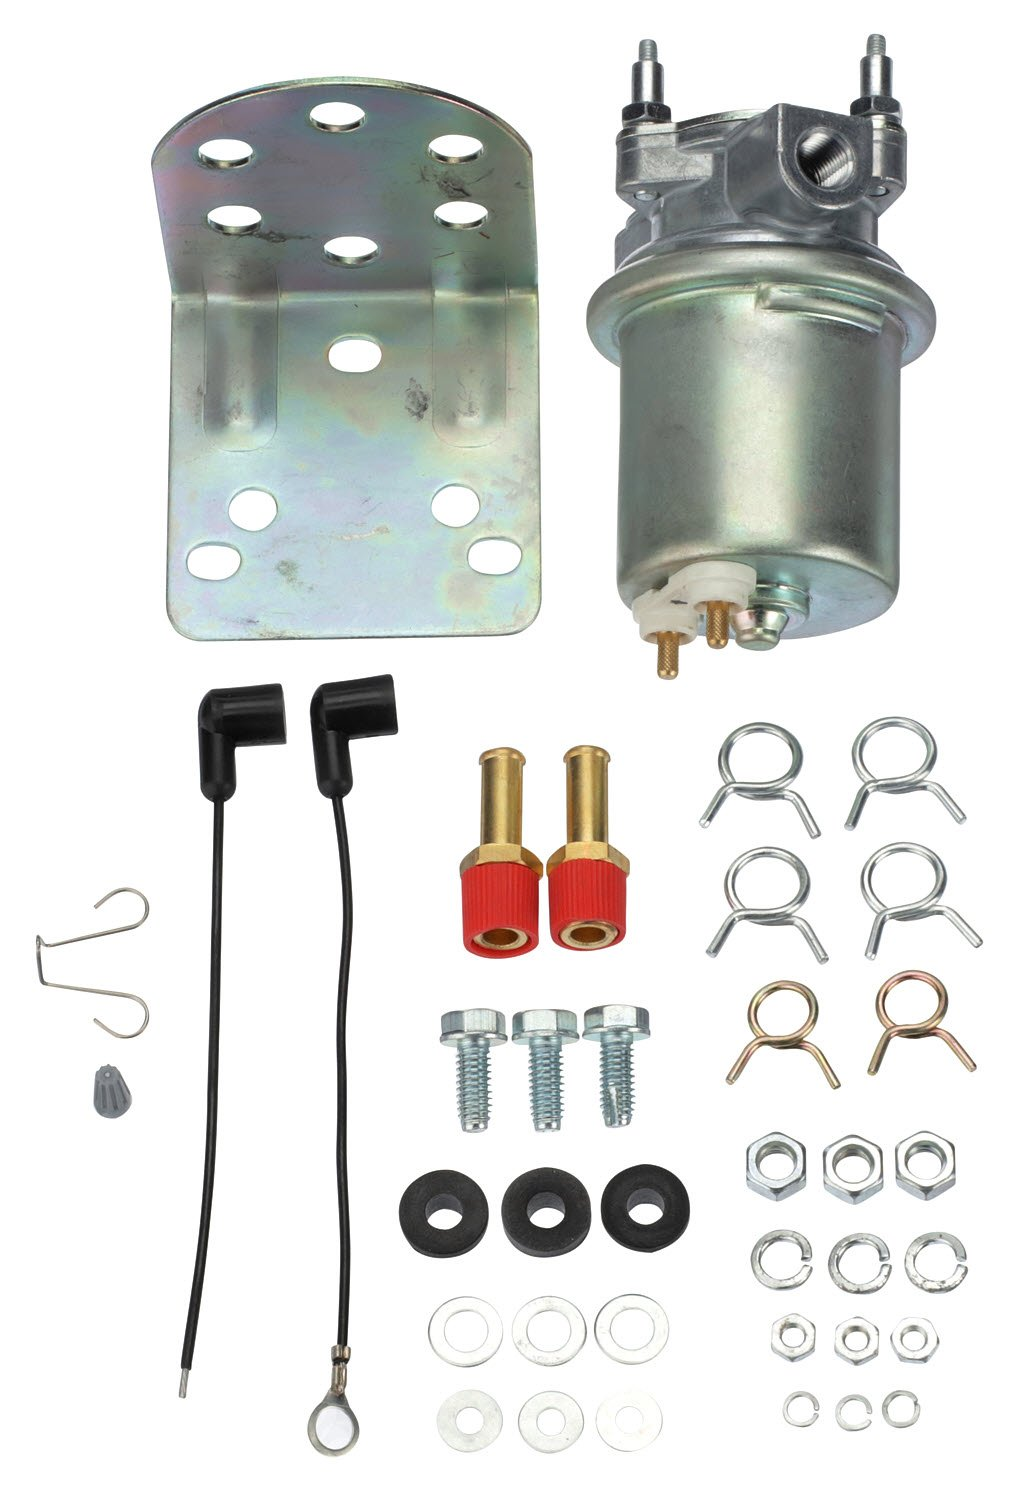 71PD1iWhSUL._SL1500_ amazon com fuel pumps & accessories fuel system automotive GM Fuel Pump Wiring Diagram at aneh.co